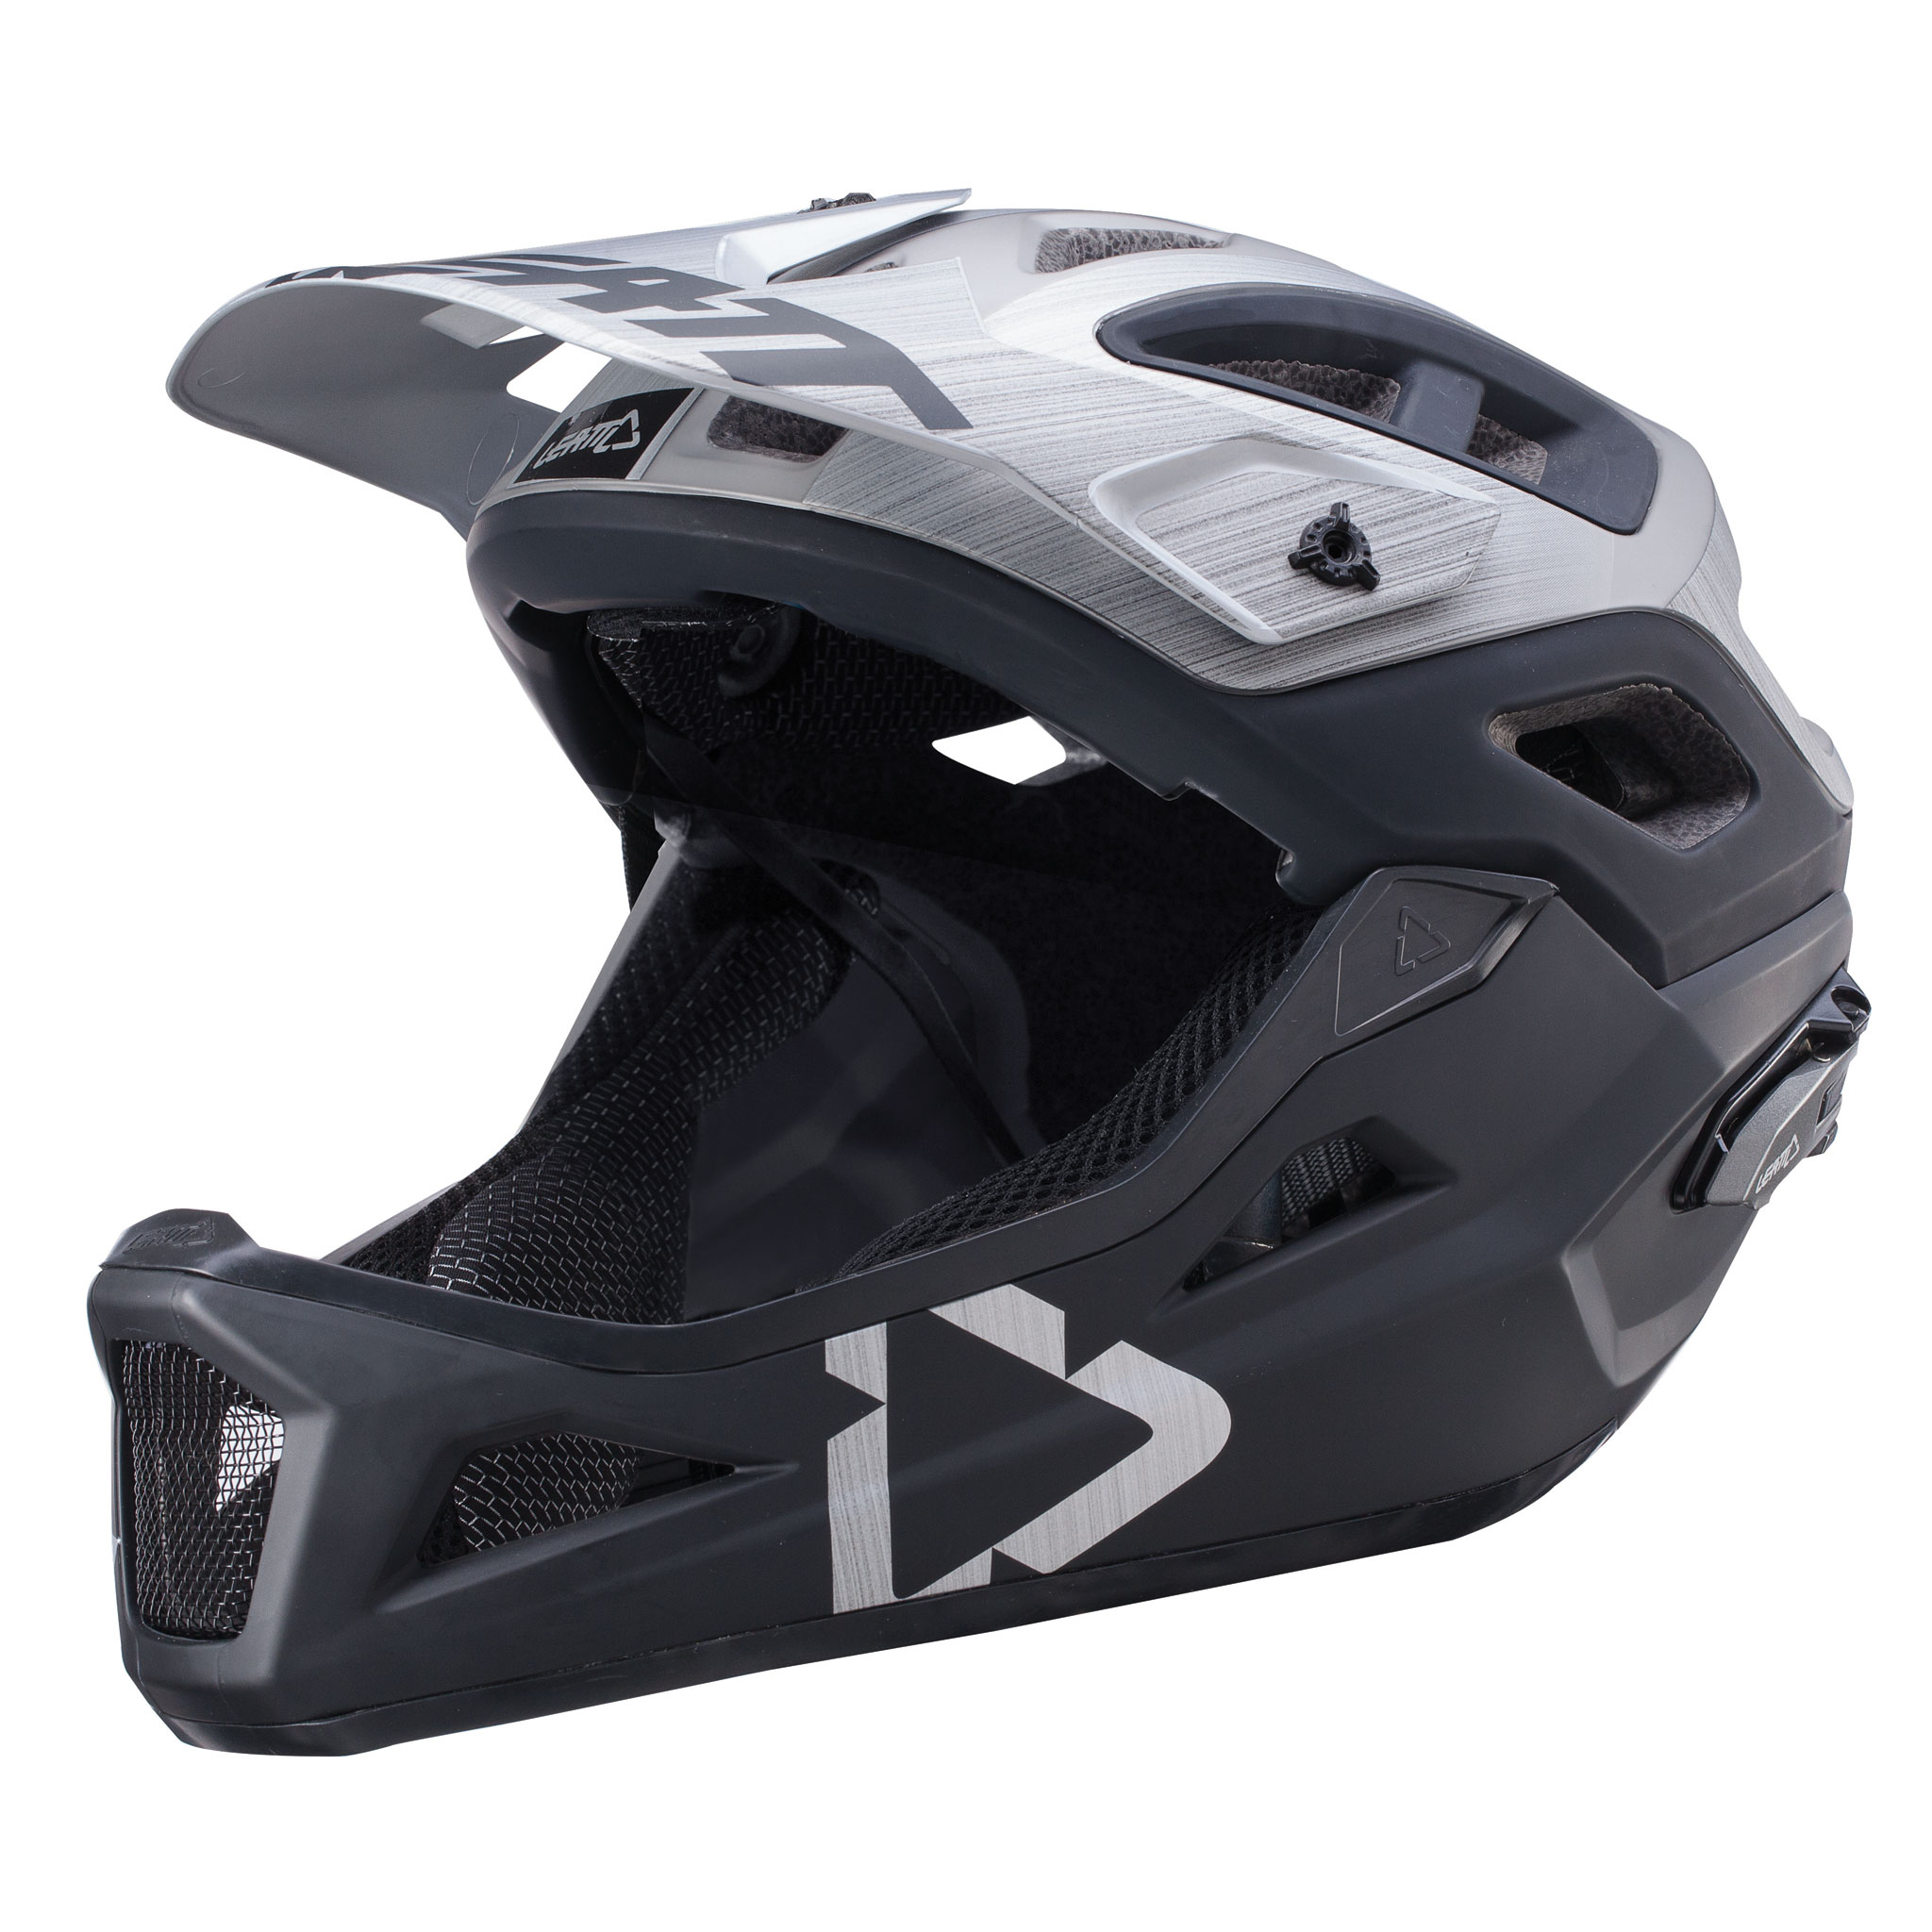 DBX 3.0 Enduro Helmet, Brushed - L (59-63cm)